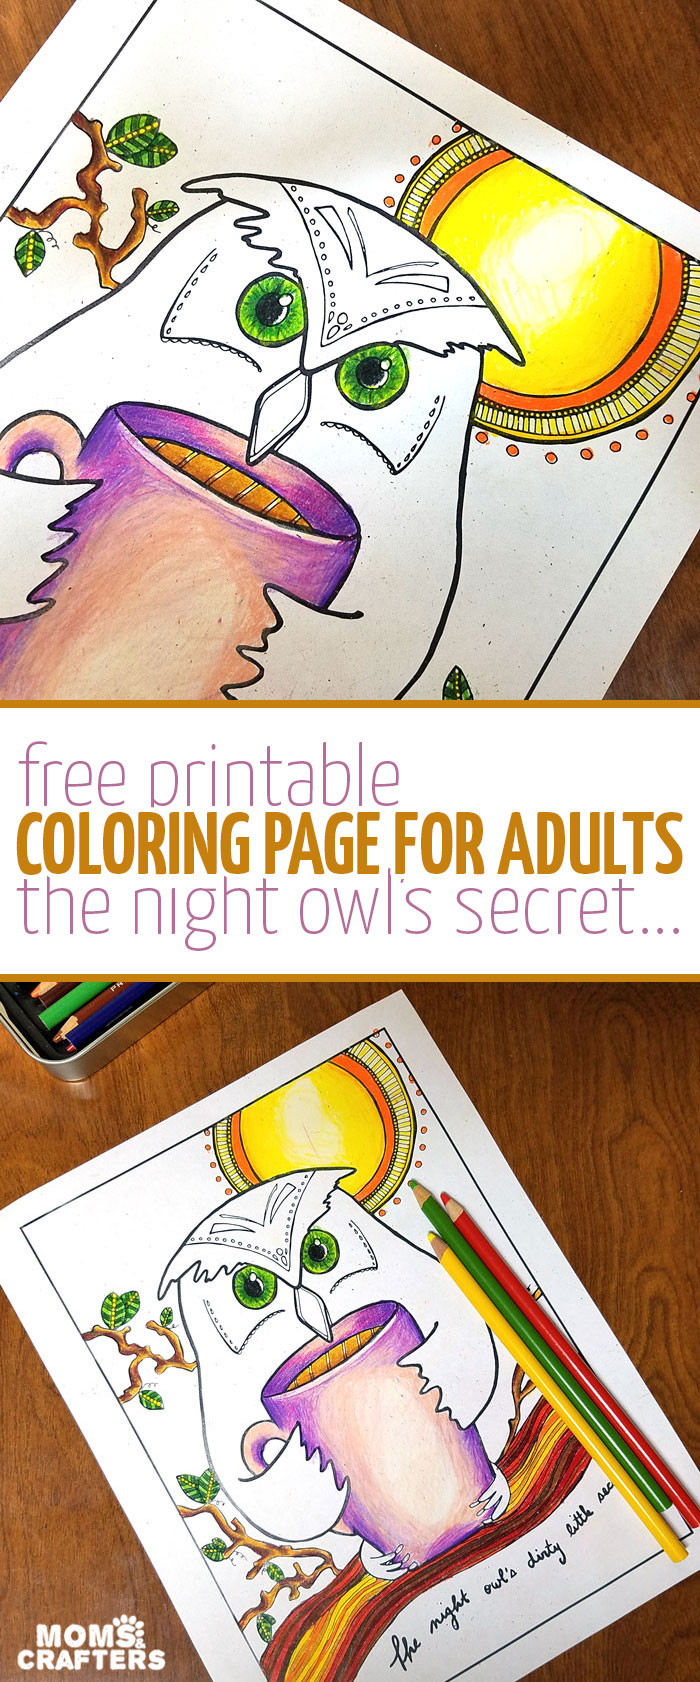 "Get this FREE printable coloring page for adults - it's a quirky and unique owl coloring page! ""The night owl's dirty little secret"" is that cup of coffee he's holding.. This colouring page for grown-ups blends two of my favorite thems: owls and coffee adult coloring pages! At the bottom you'll find links for 4 more free adult coloring pages."